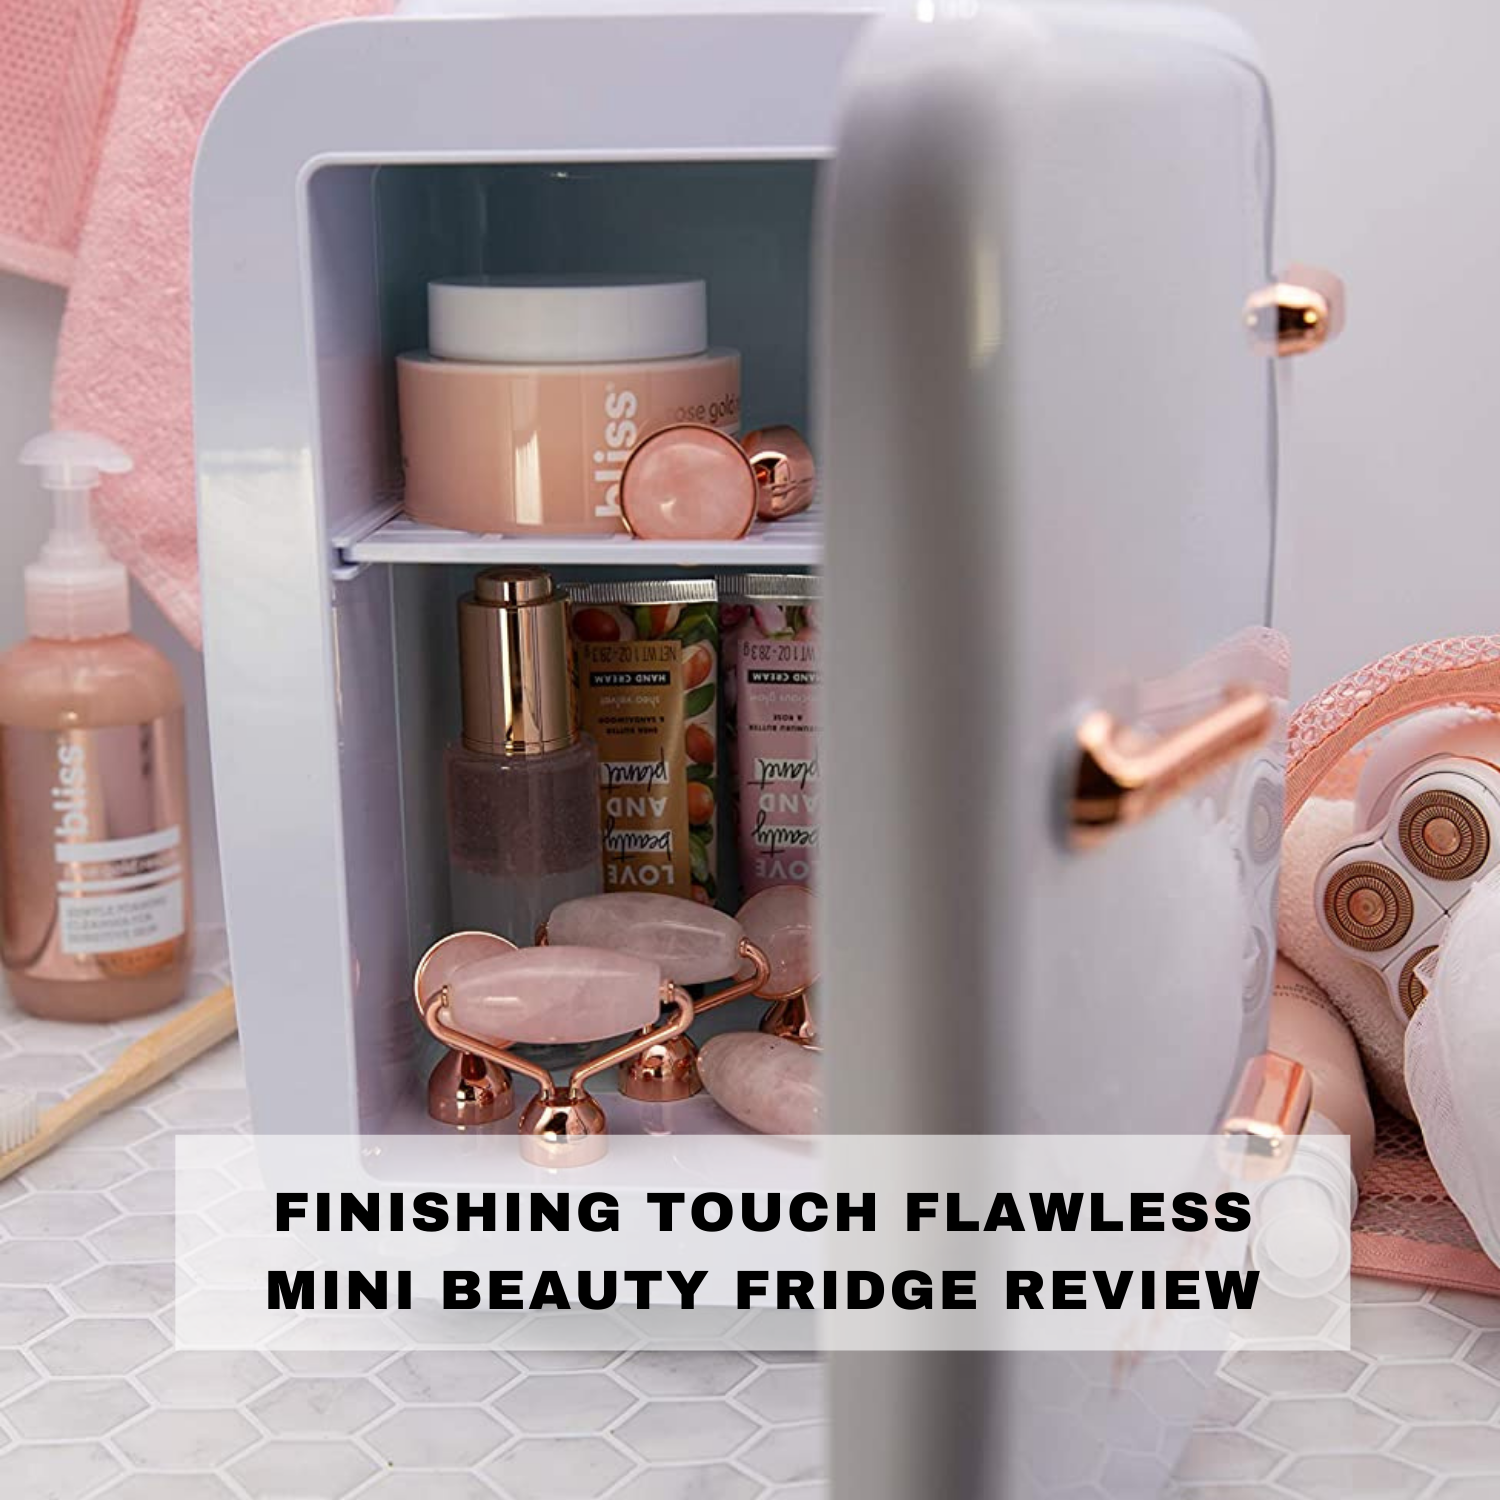 Finishing Touch Flawless Mini Beauty Fridge Review